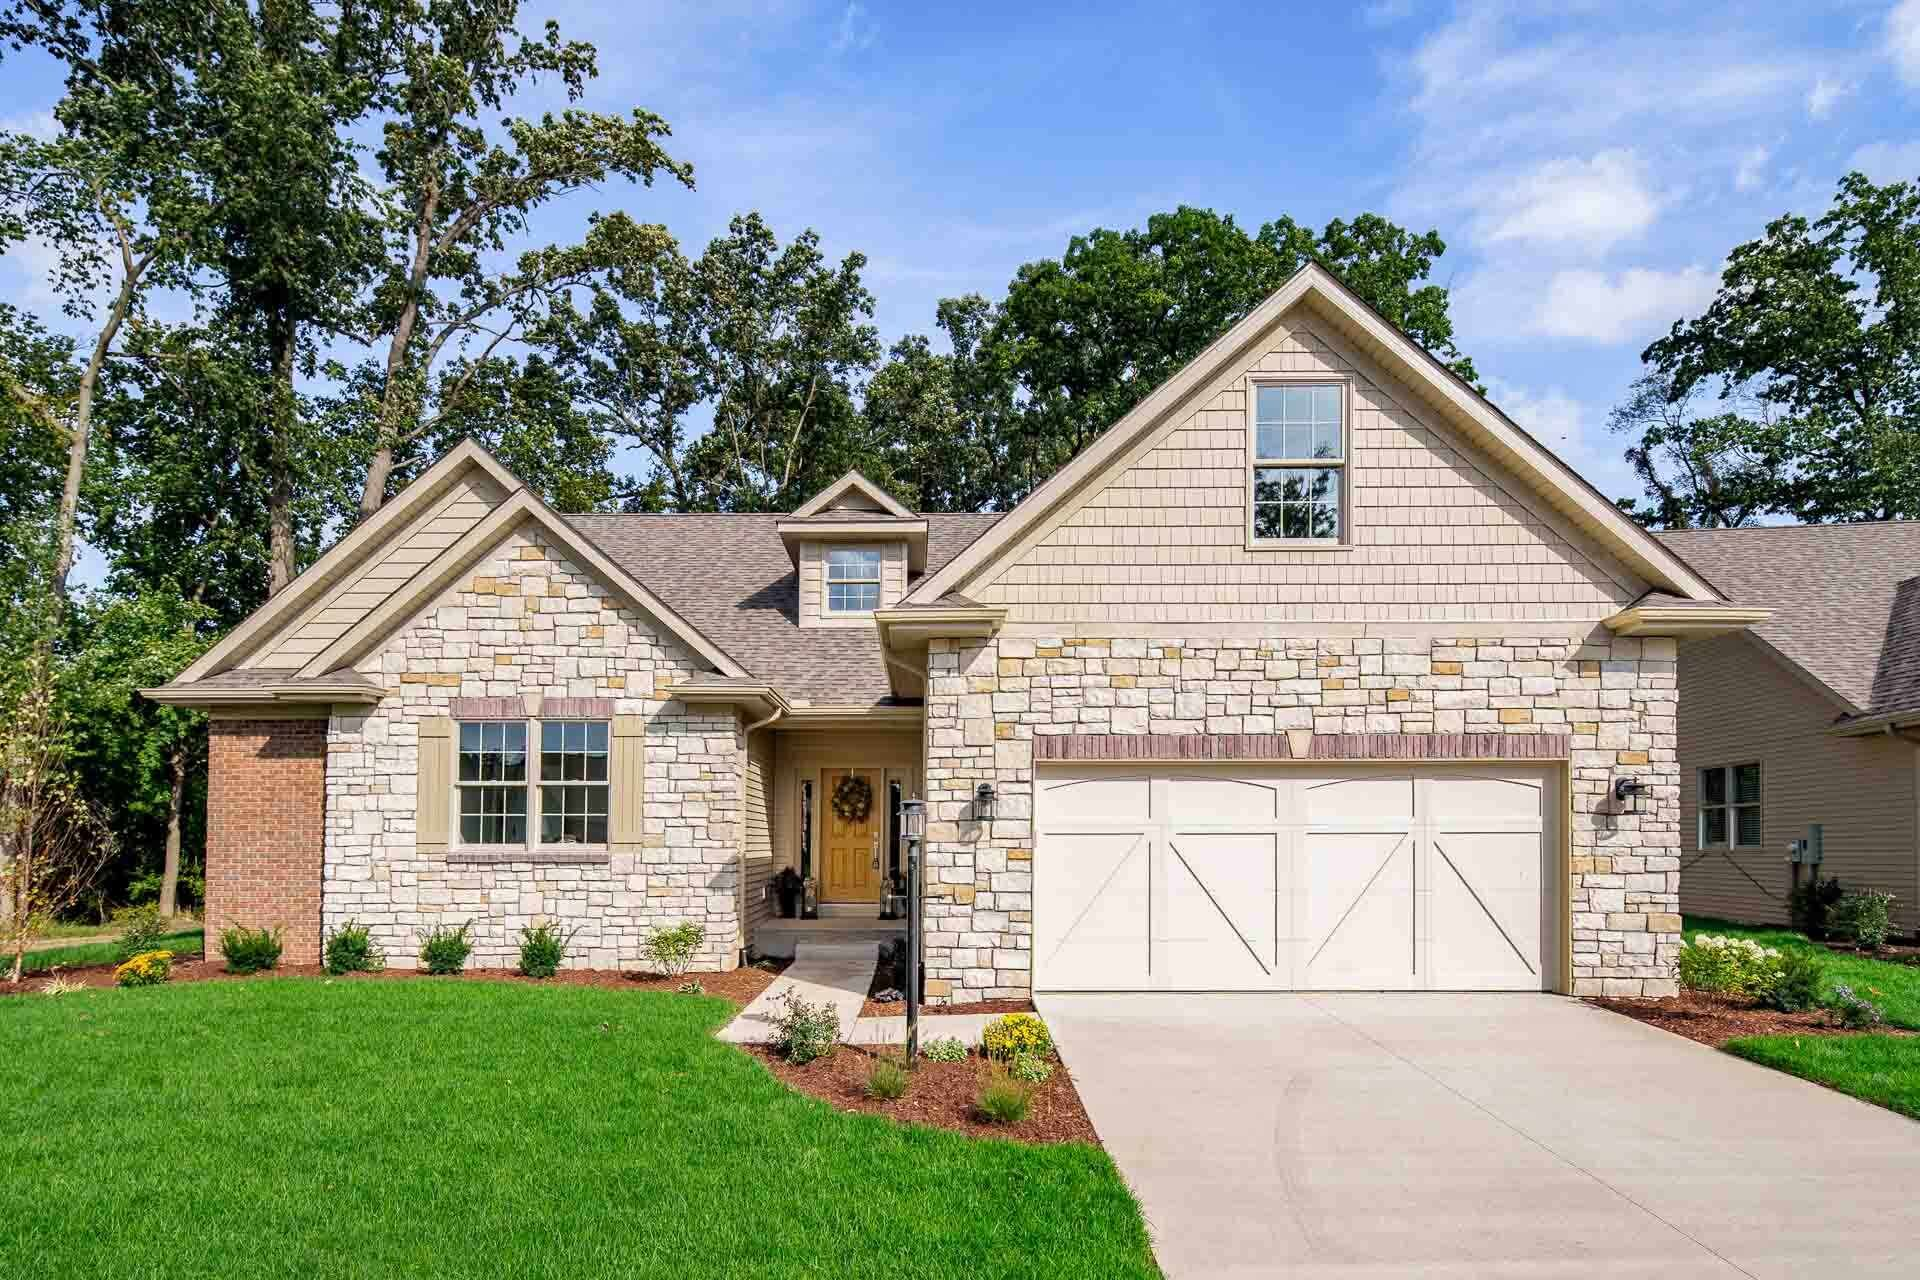 19930 Foley Circle N - SOUTH BEND, IN 46617$489,900   3 Beds   2½ Baths   2,319 ft²